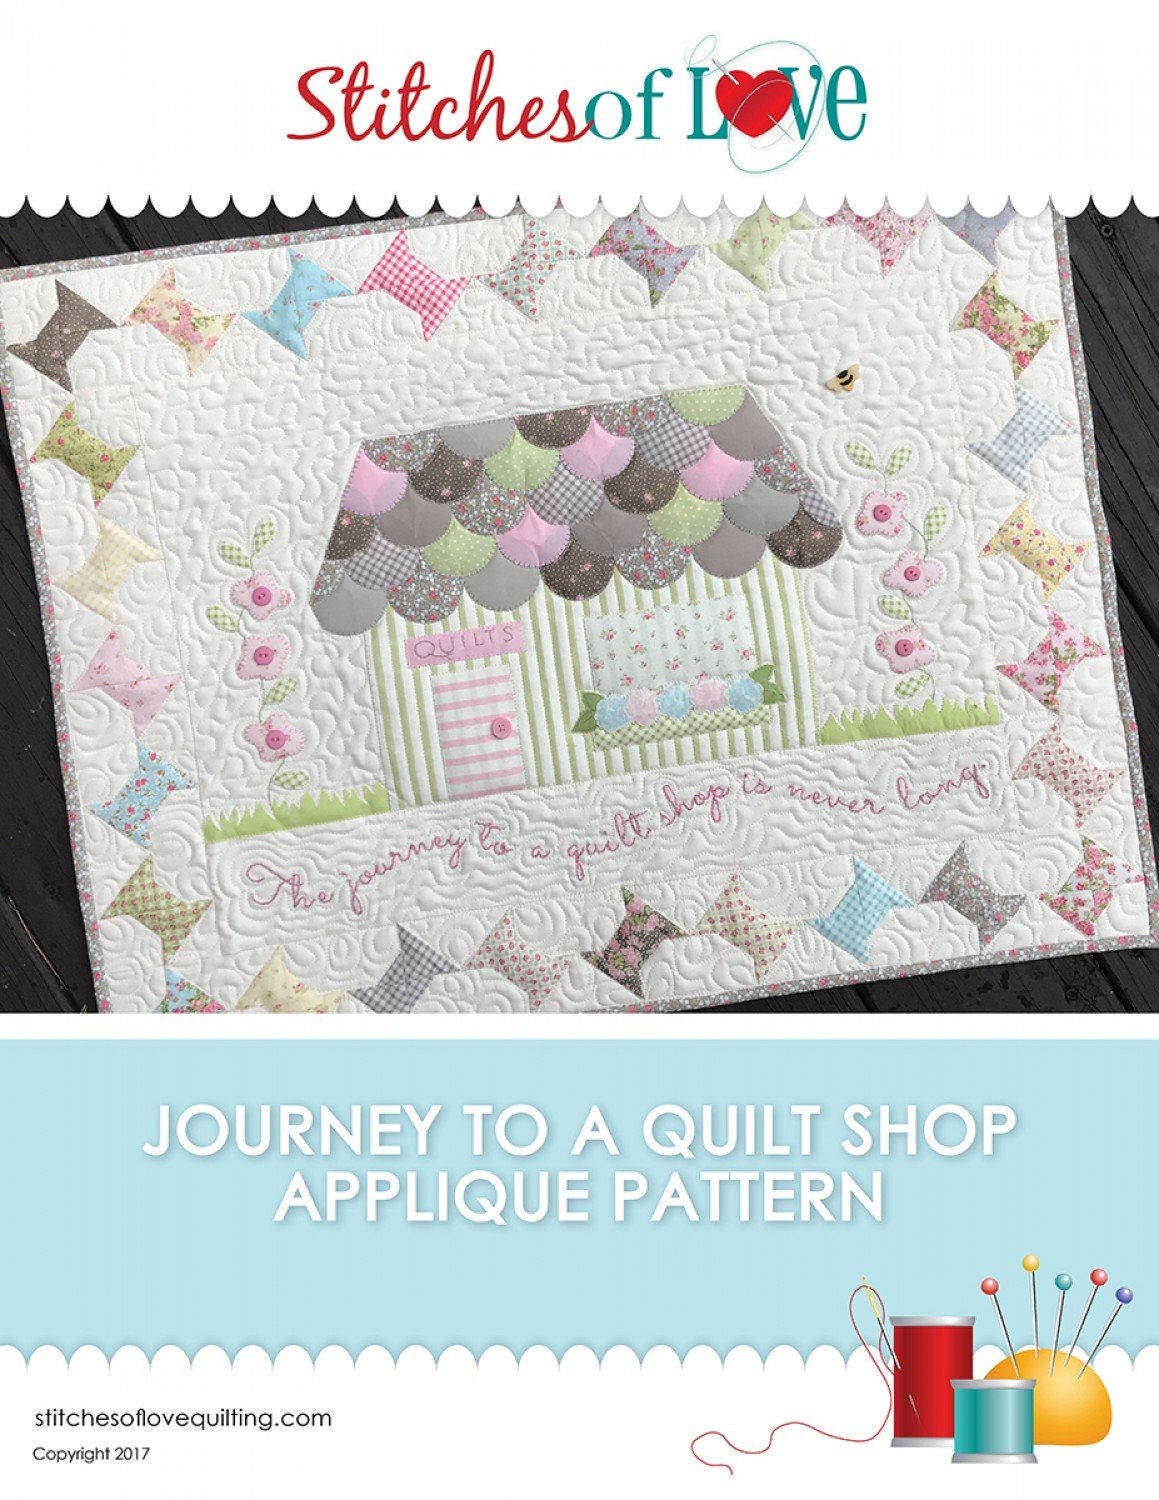 The Journey To A Quilt Shop Applique Pattern